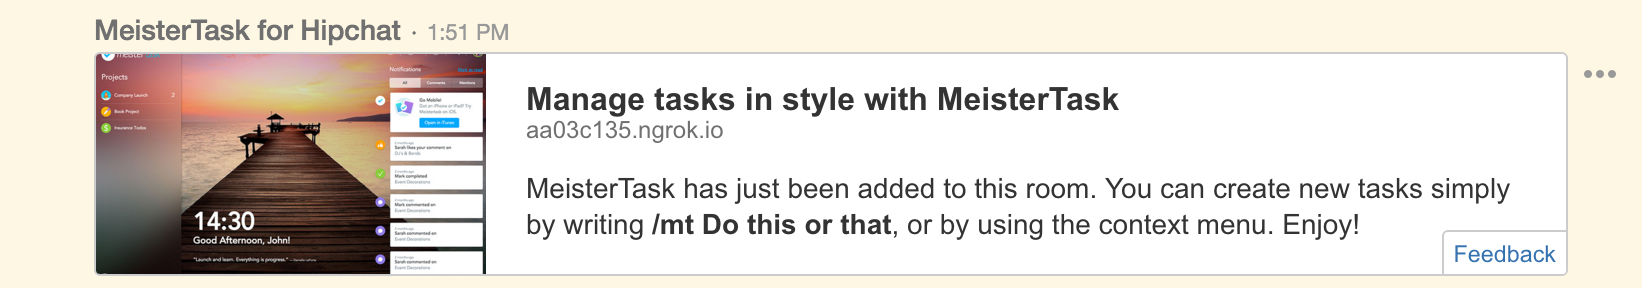 MeisterTask HipChat welcome message